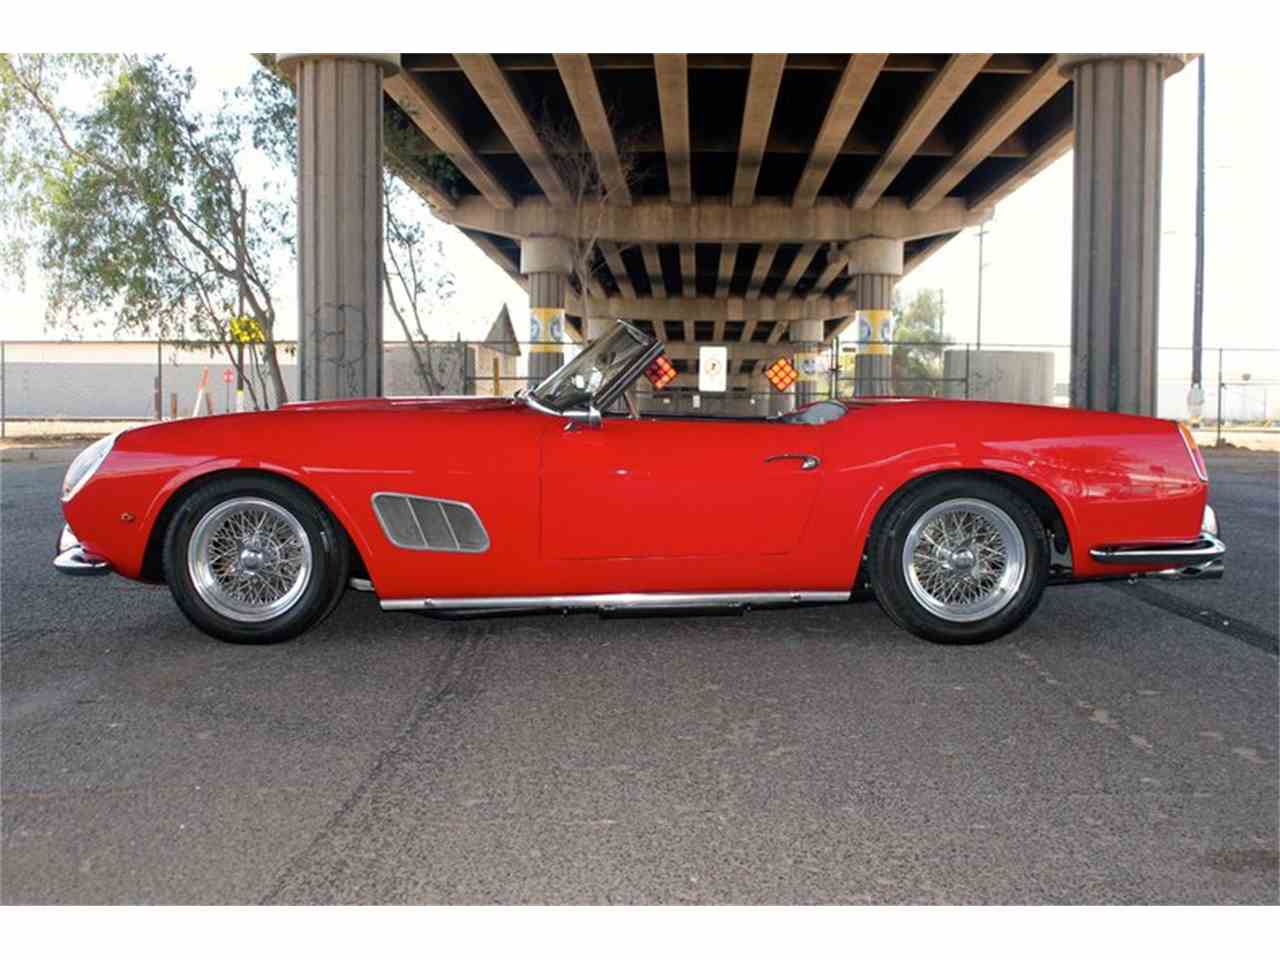 Large Picture of Classic '63 250 GTE California Spyder located in Arizona Auction Vehicle Offered by EMG - J2E5